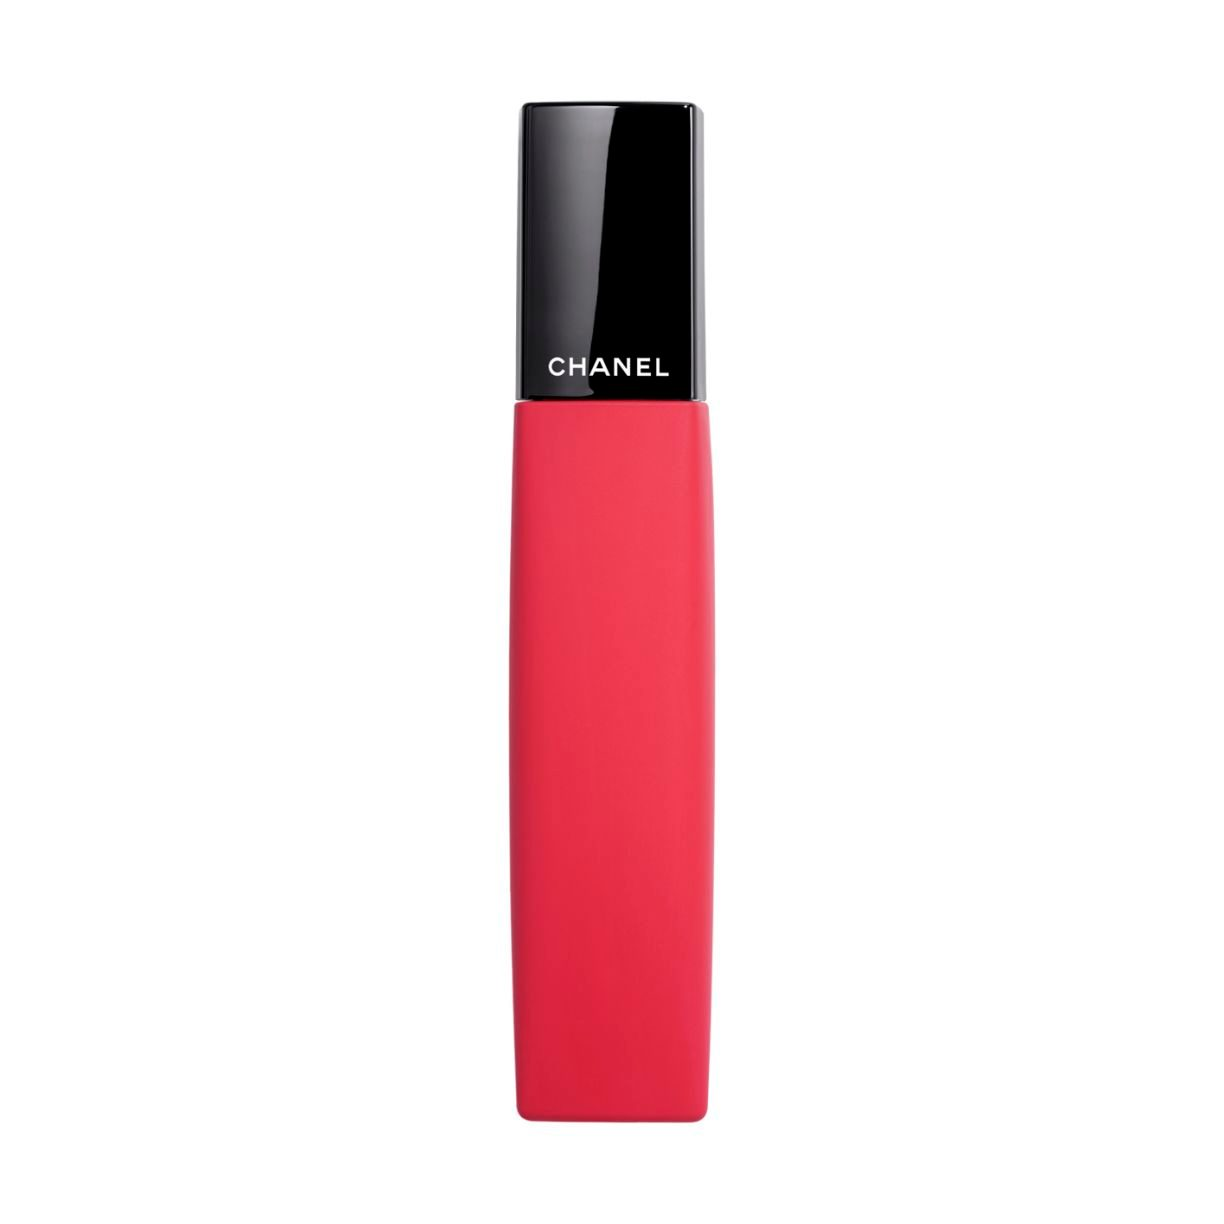 ROUGE ALLURE LIQUID POWDER LIQUID MATTE LIP COLOUR BLURRED EFFECT